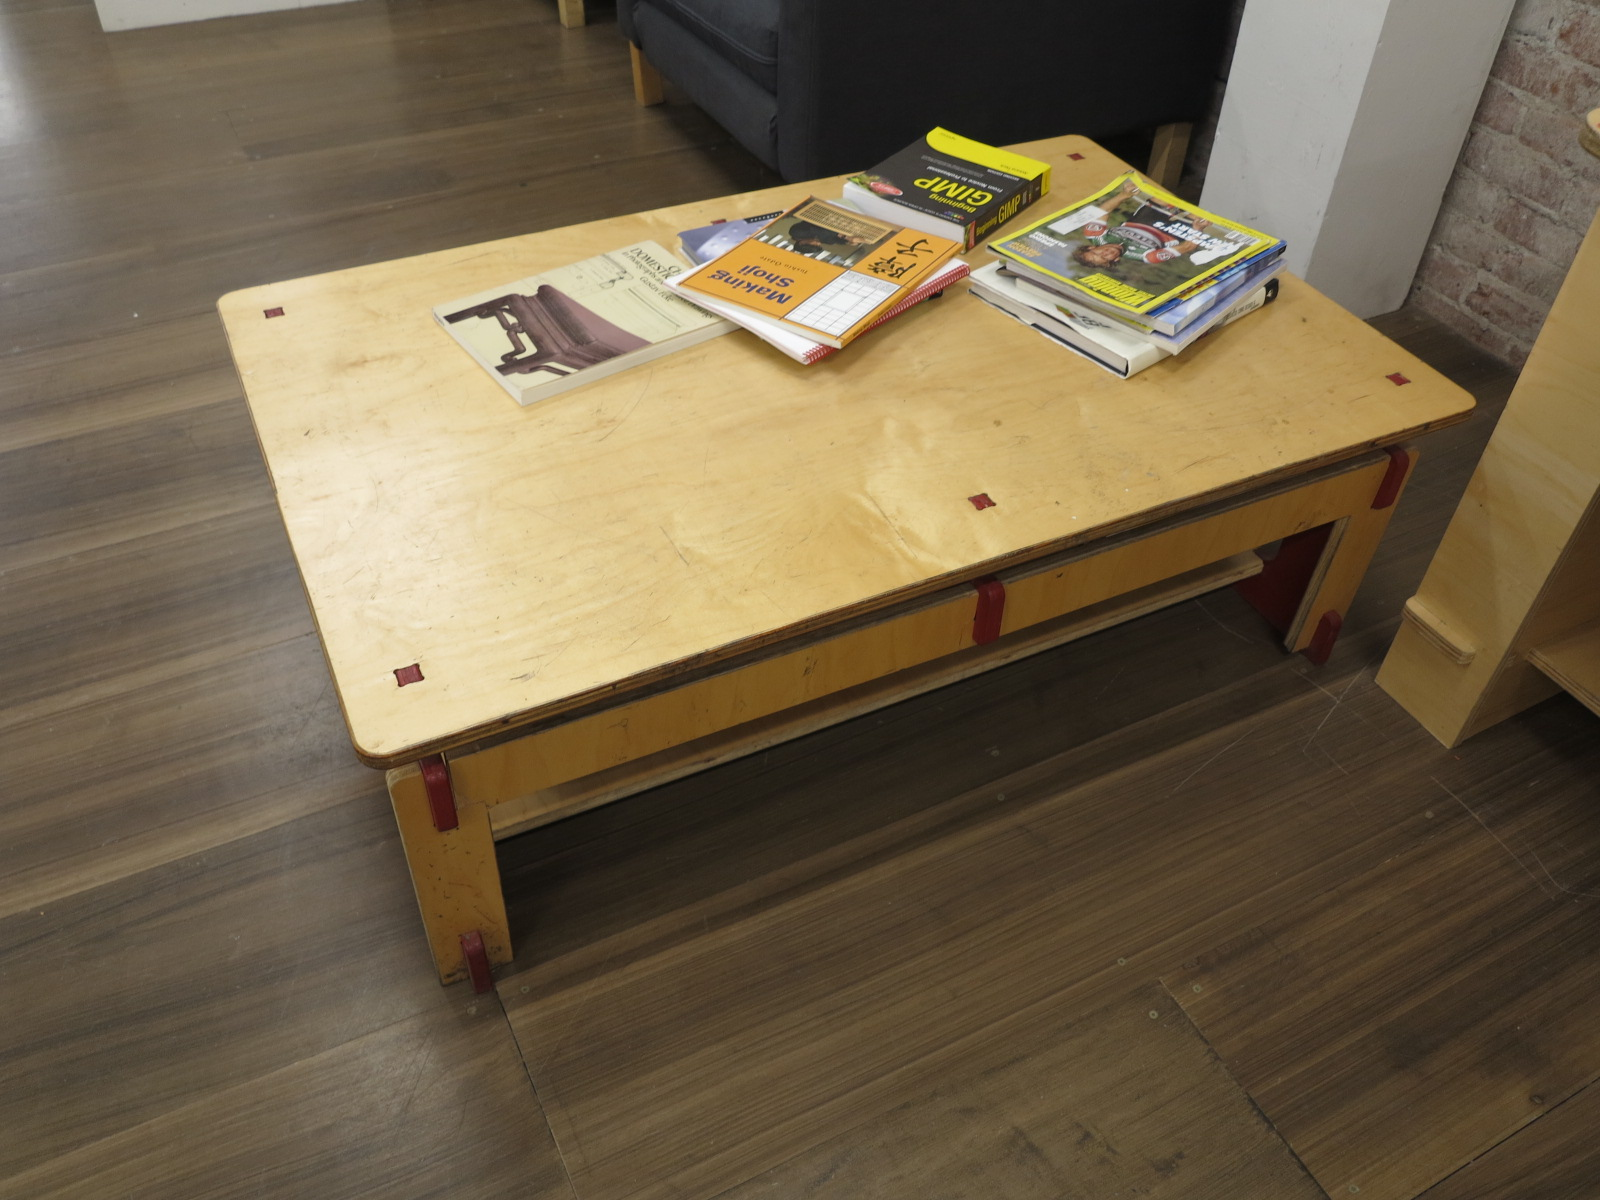 """Lot 31 - LOT - (1) 30"""" X 48"""" TABLE AND (1) 86"""" X 36"""" TABLE"""